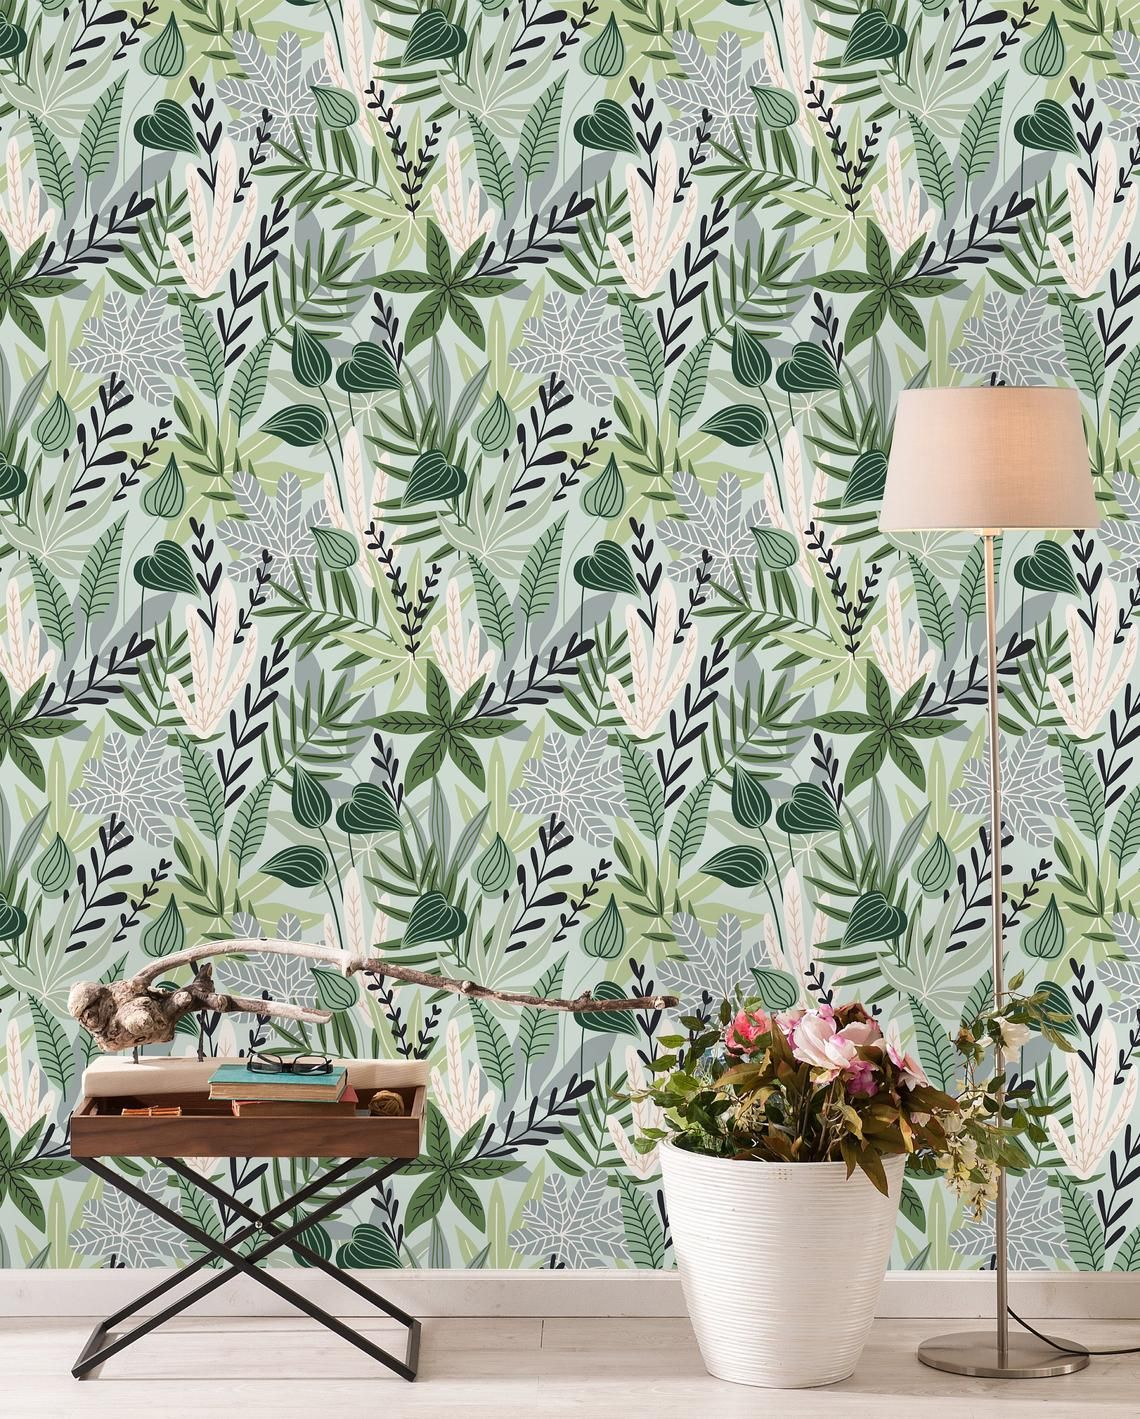 Botanical Pattern Removable Wallpaper Peel And Stick Etsy Removable Wallpaper Peel And Stick Wallpaper Wall Texture Patterns